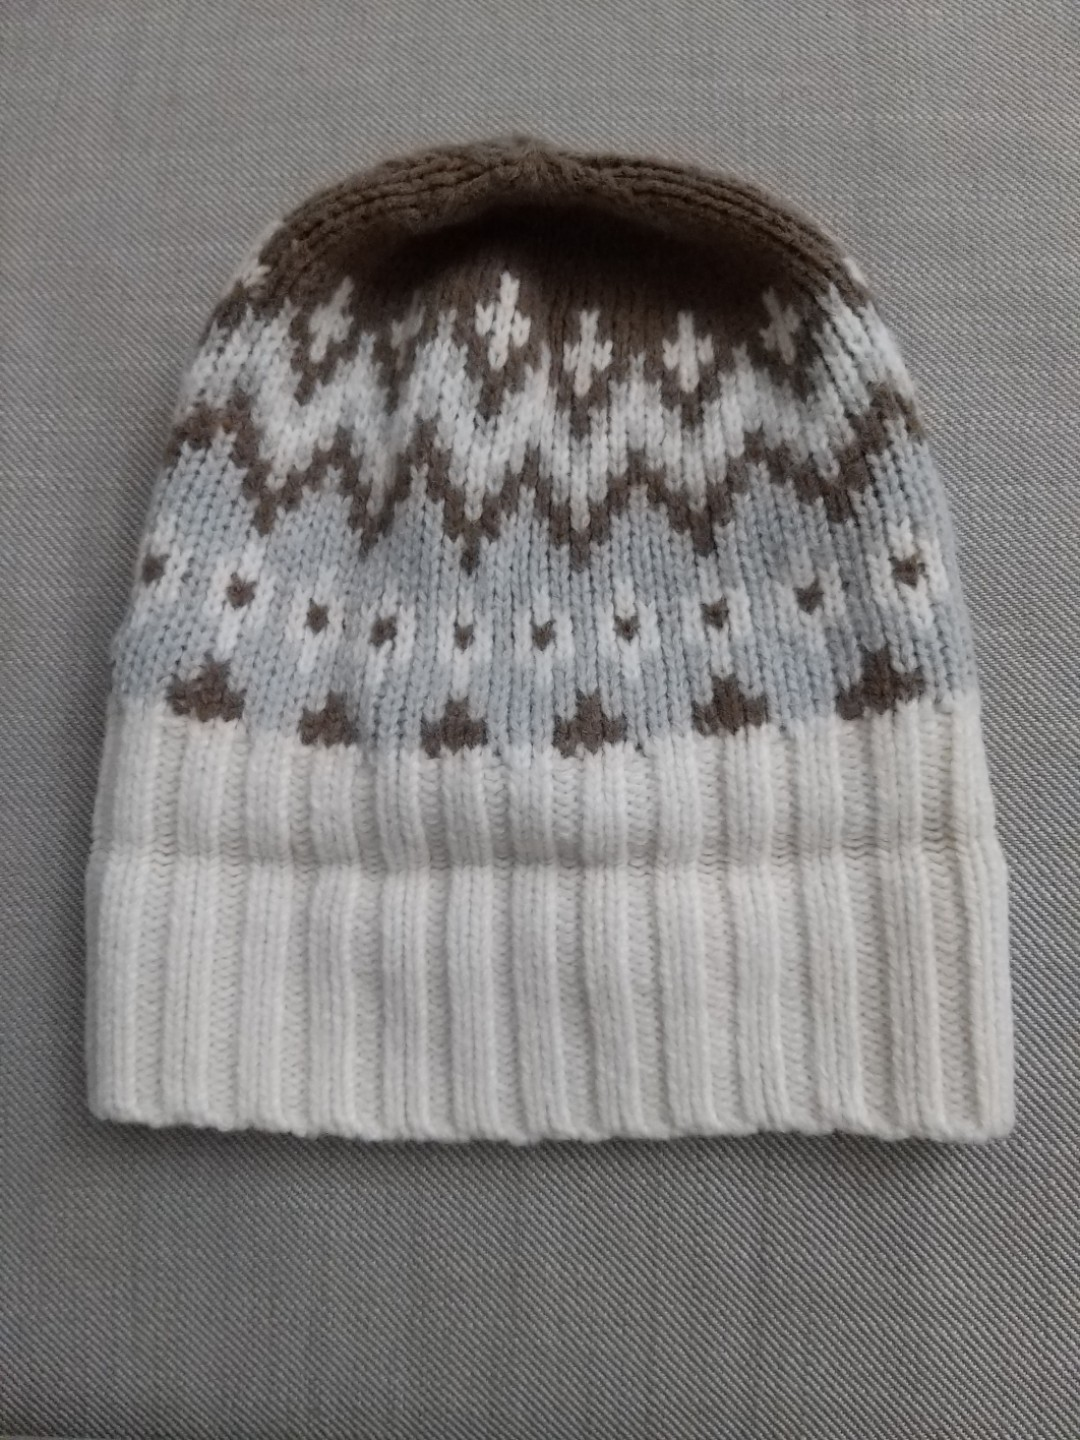 deb9f70cdb7c3 Uniqlo heattech knitted beanie in beige and brown